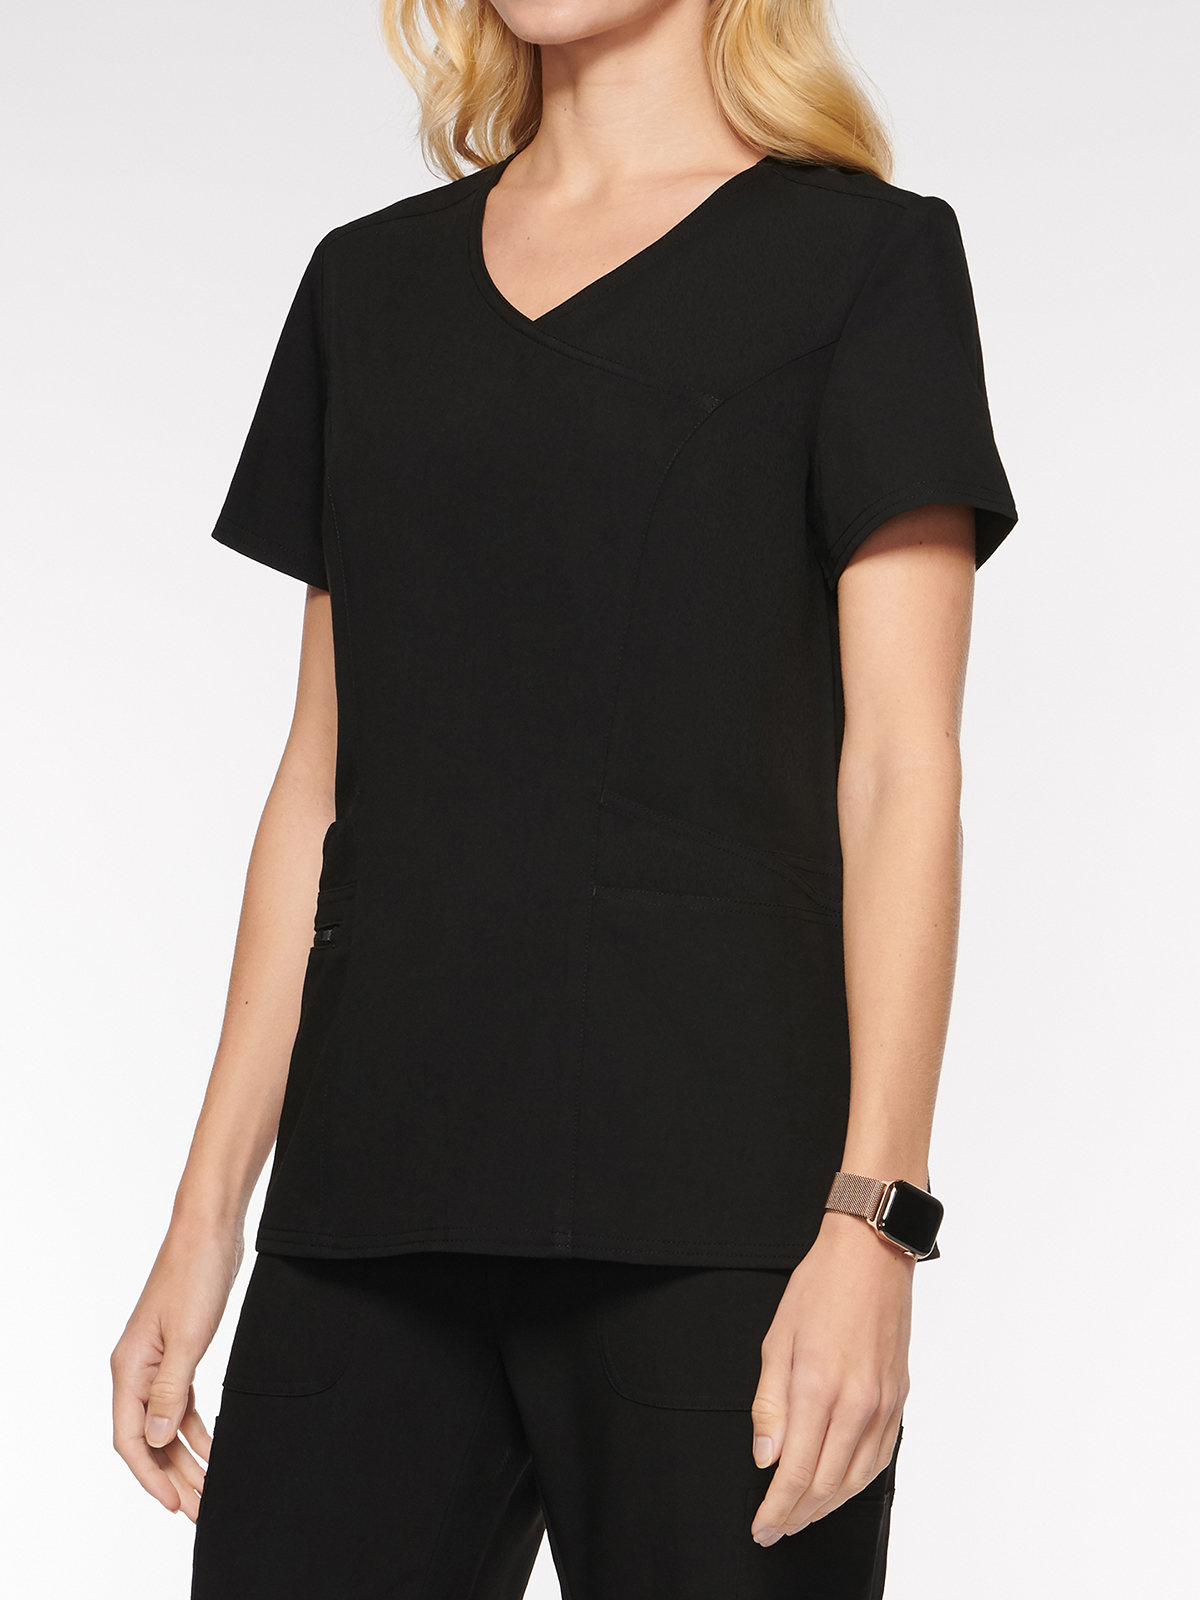 Womens Top Mock Wrap with 6 Pockets